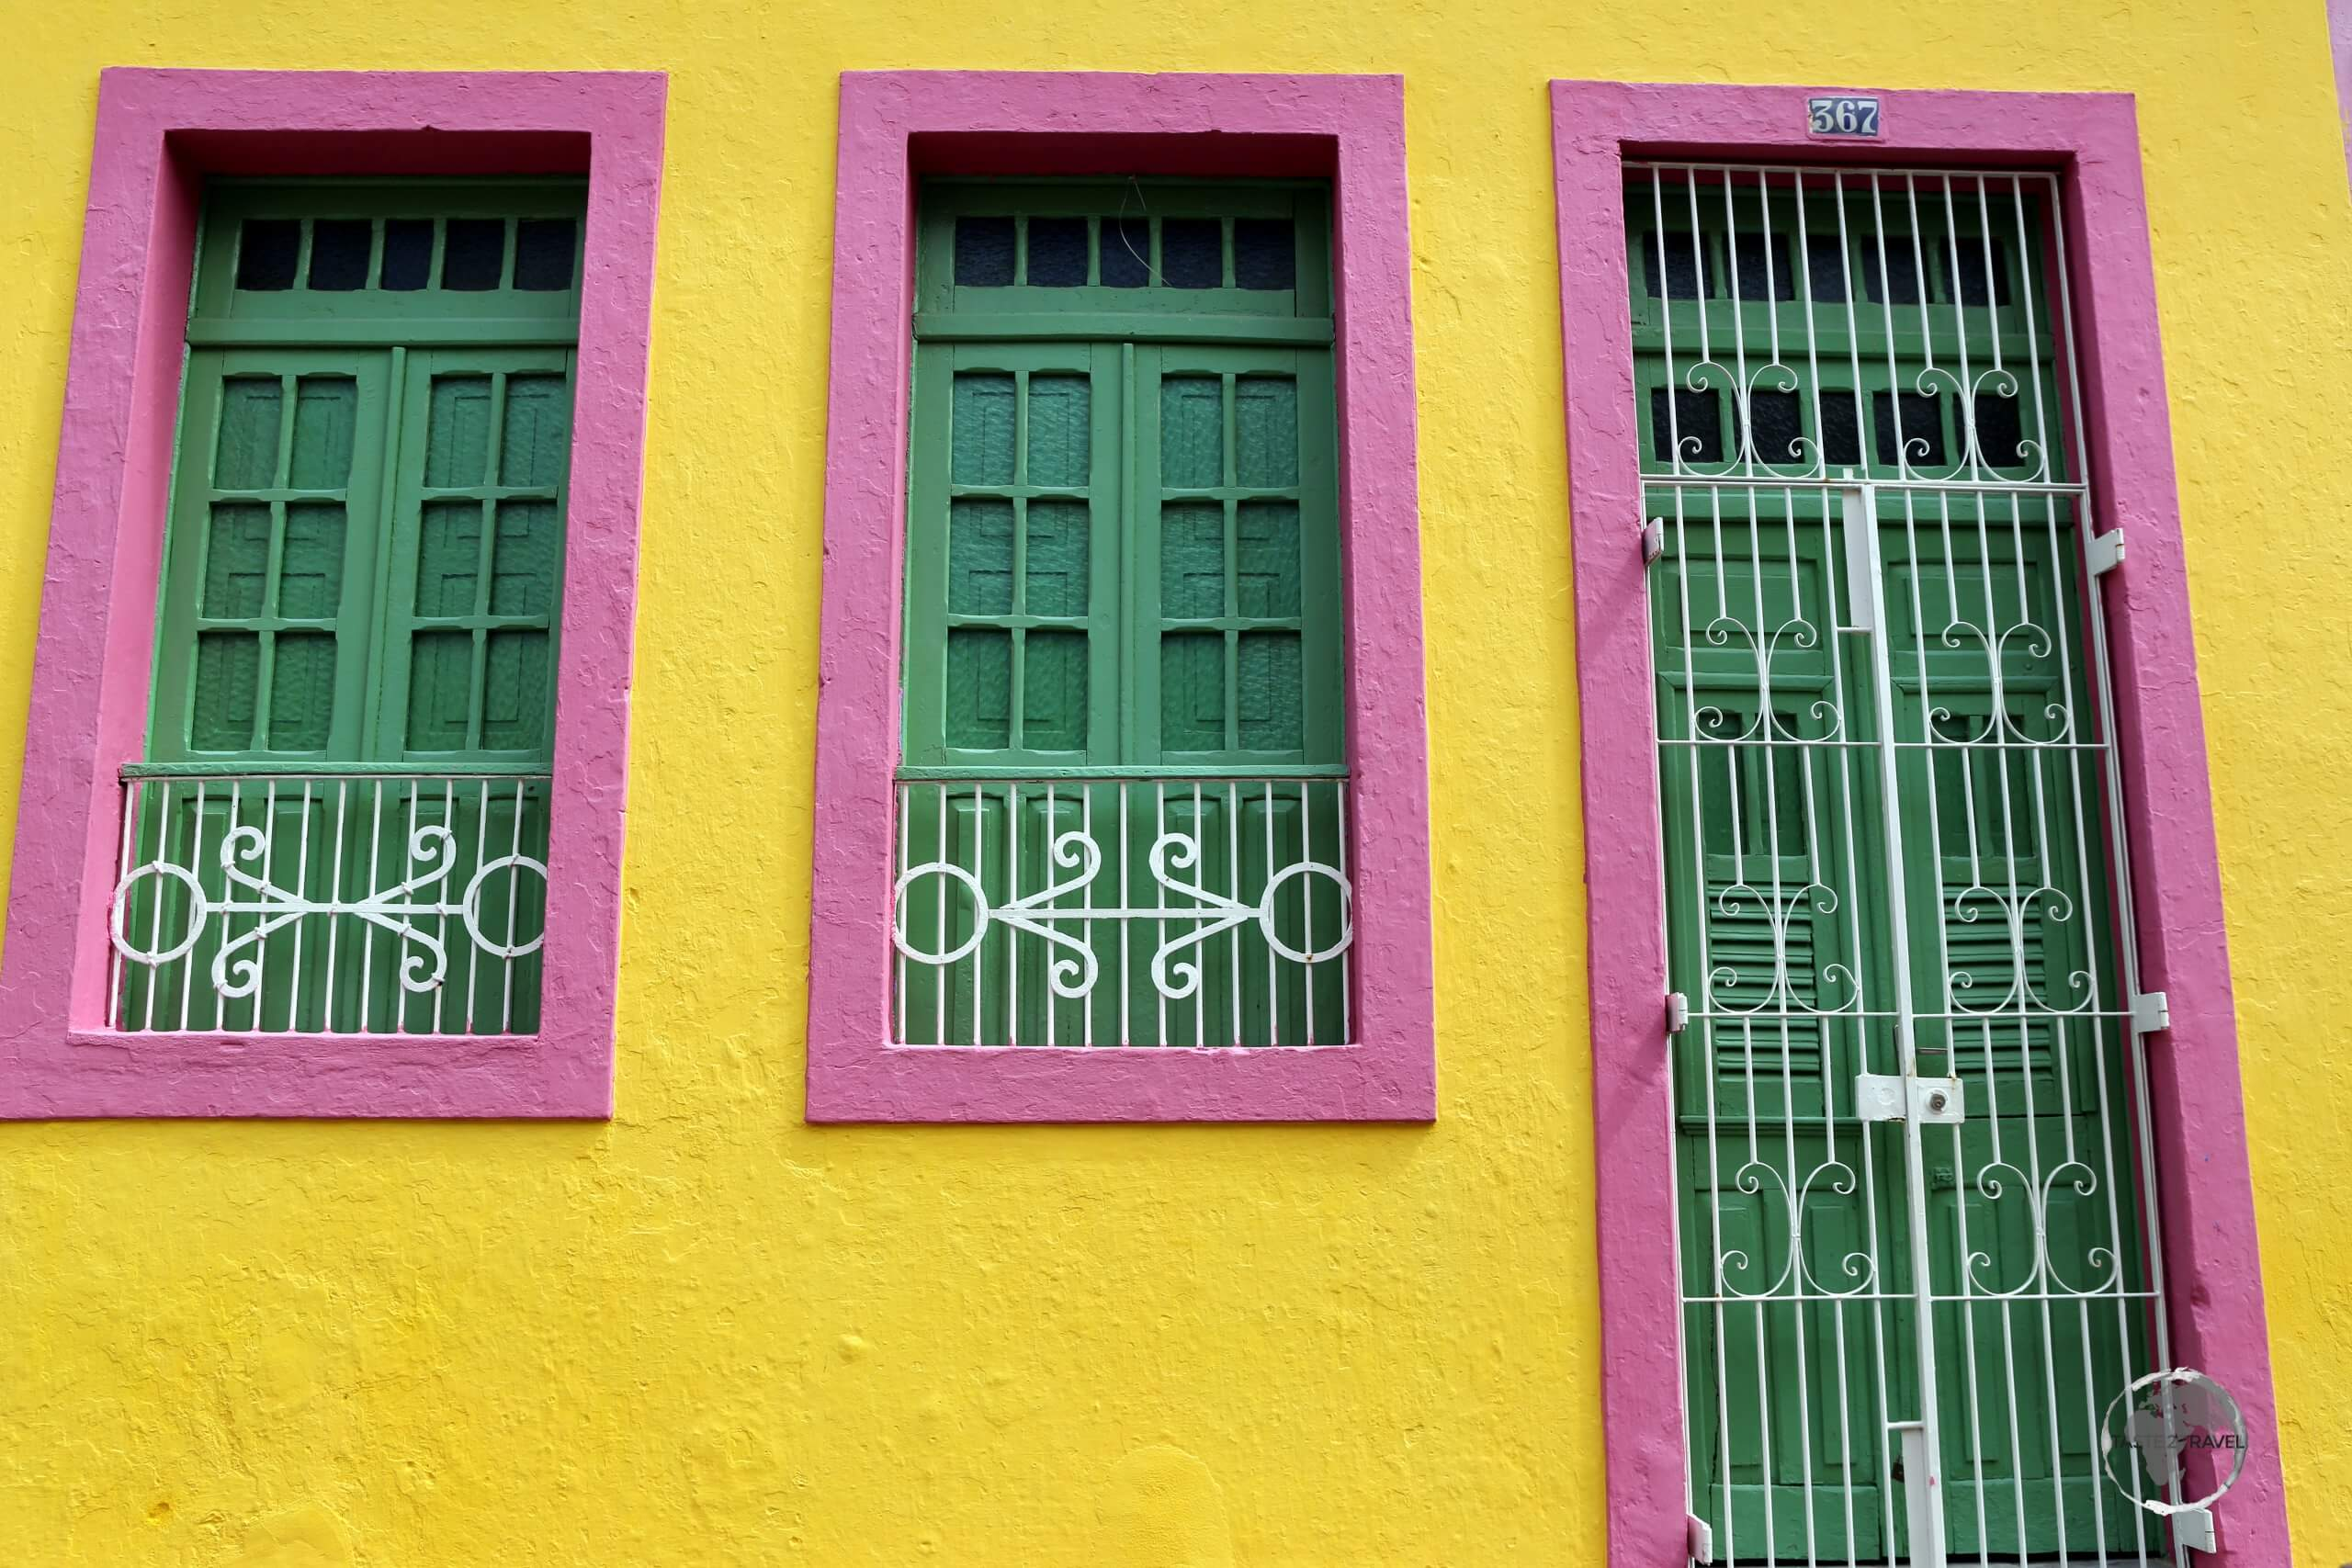 Founded in 1535 by the Portuguese, the historic town of Olinda in Pernambuco state is famous for its old town, whose streets are lined with colourful houses.